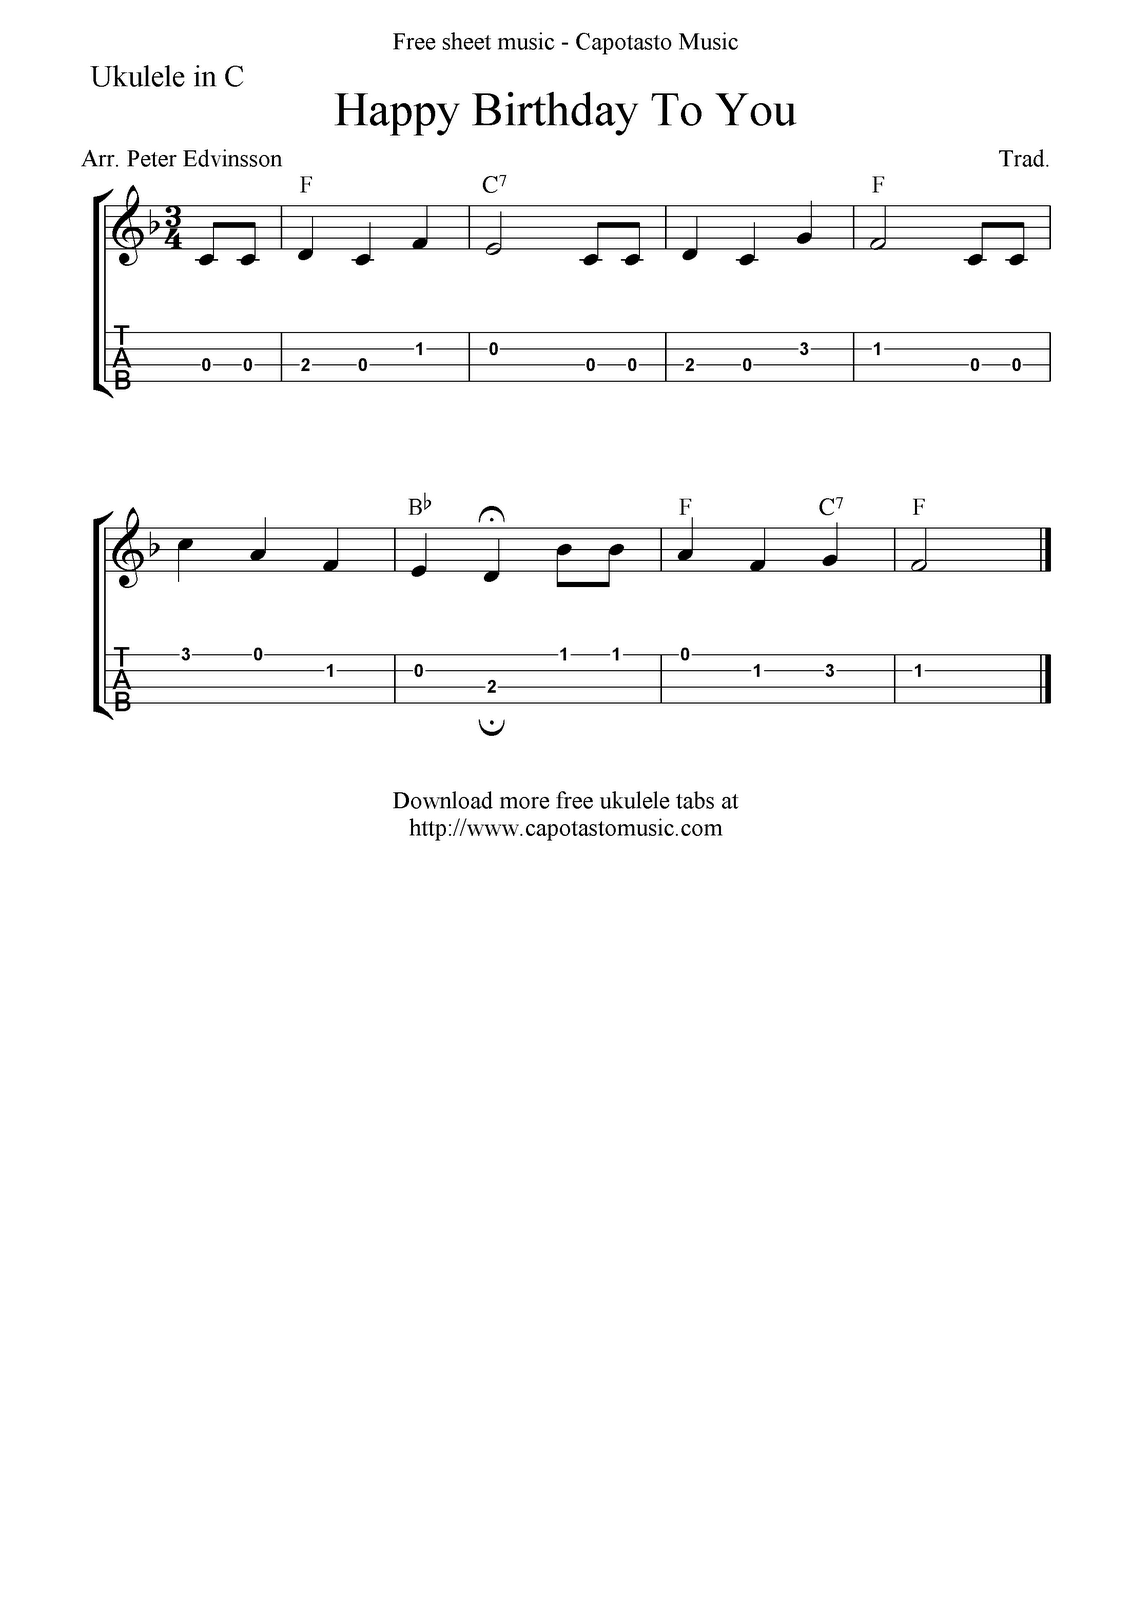 """Happy Birthday To You"" Ukulele Sheet Music Free"